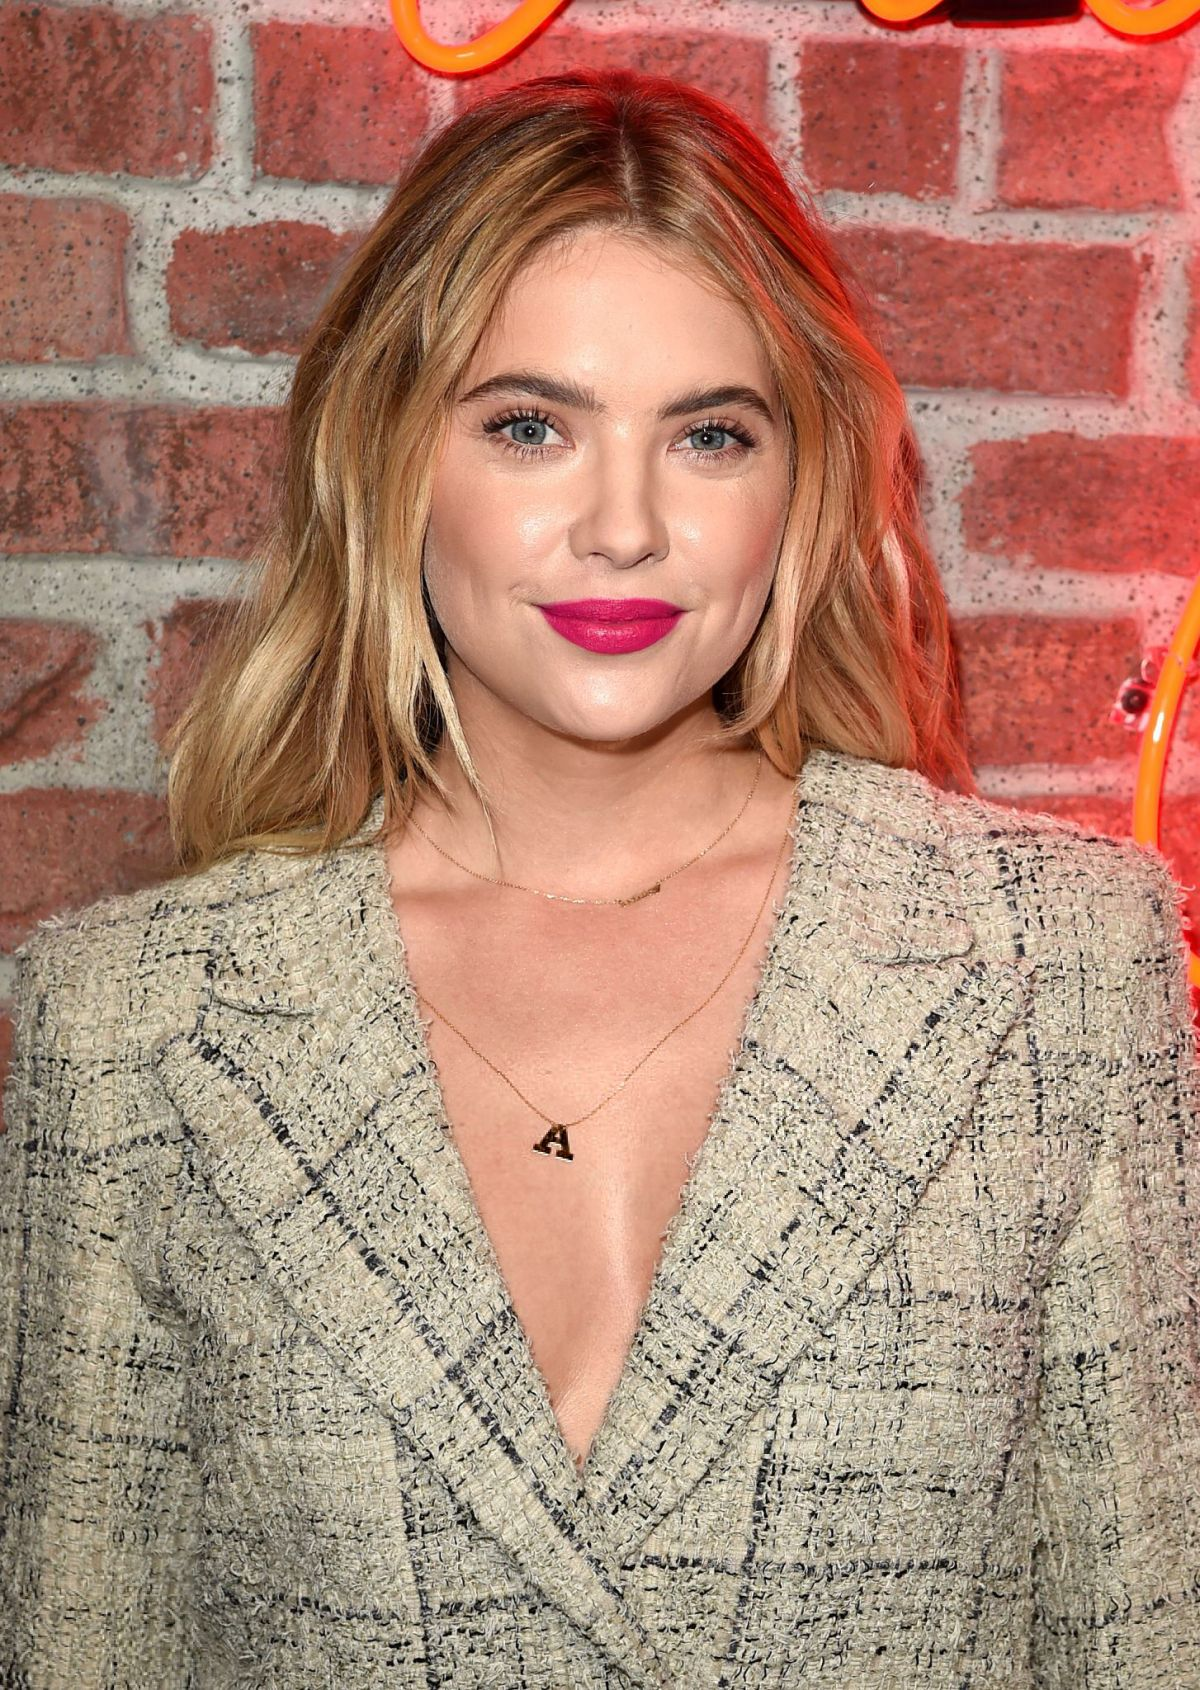 ASHLEY BENSON at I Love Coco Backstage Beauty Lounge in Los Angeles 02/25/2016